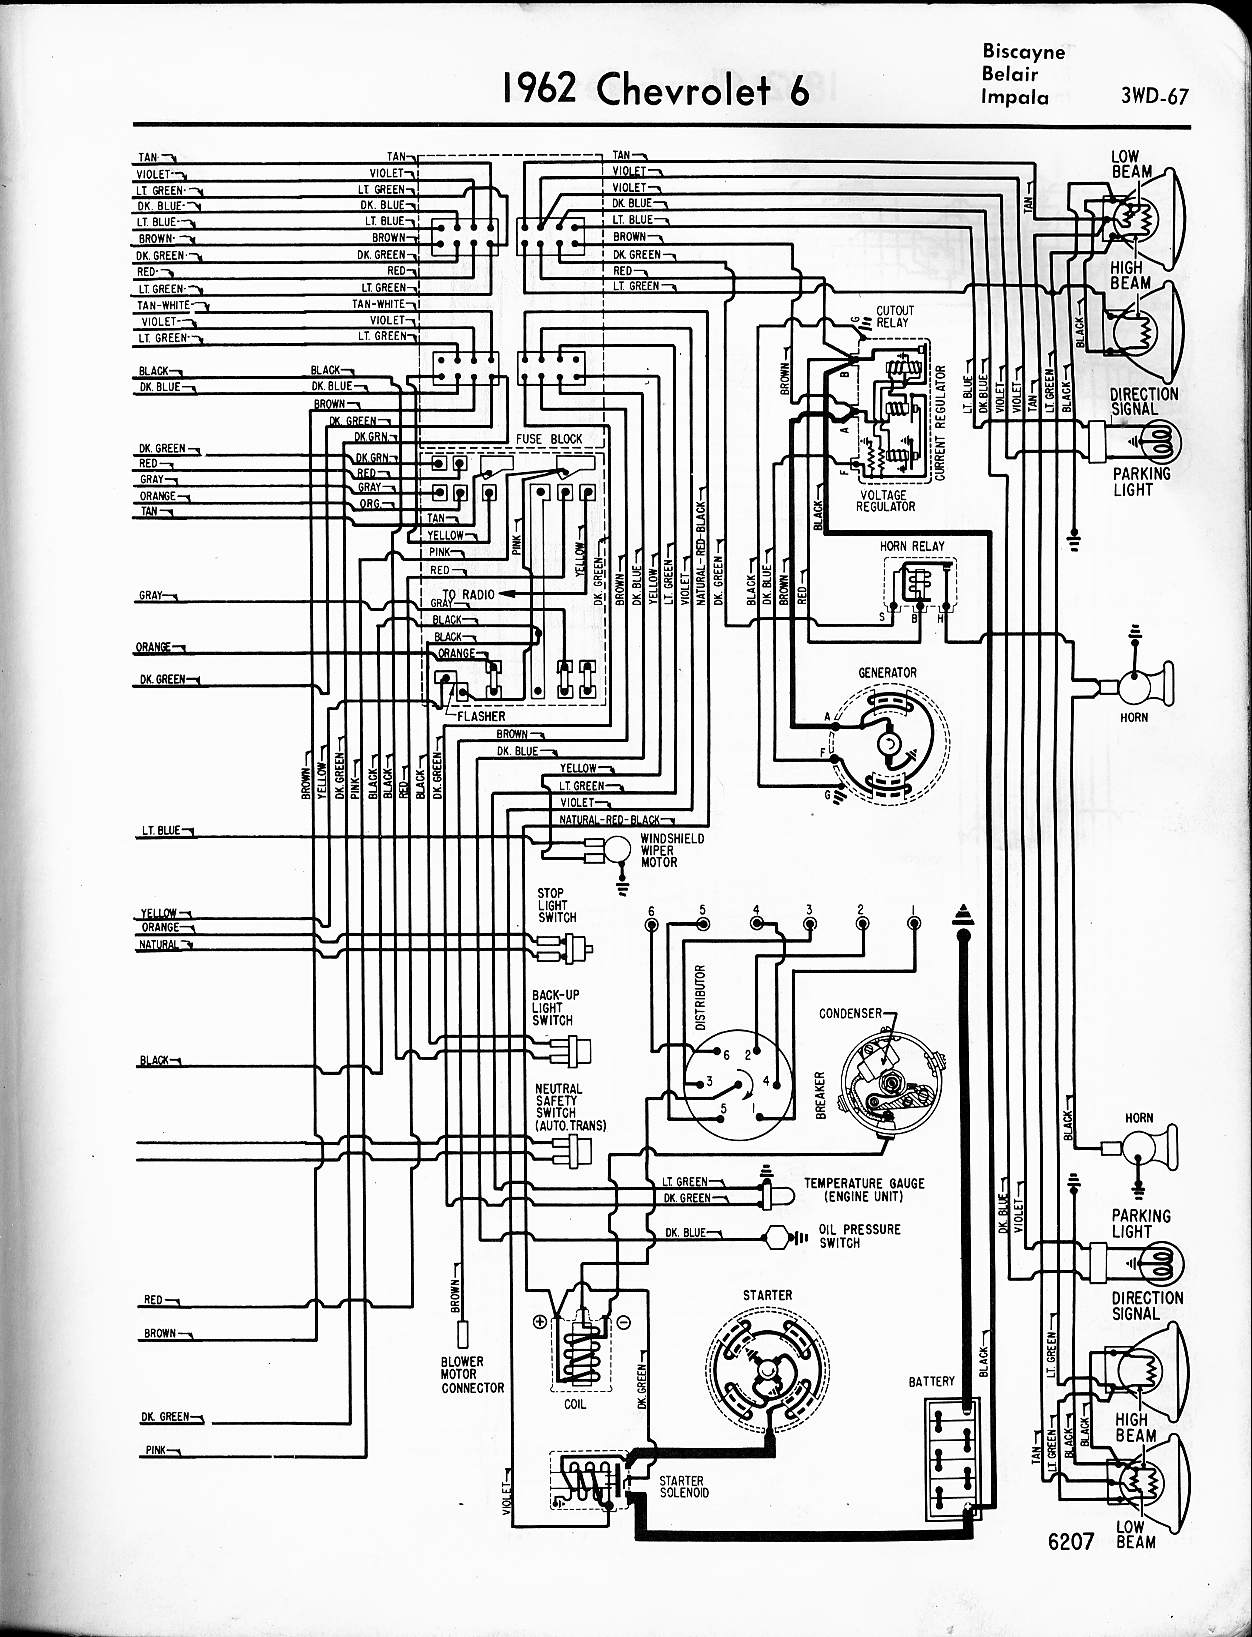 MWireChev62_3WD 067 1962 chevy truck wiring diagram 1960 chevy truck wiring diagram 1962 impala wiring harness at eliteediting.co